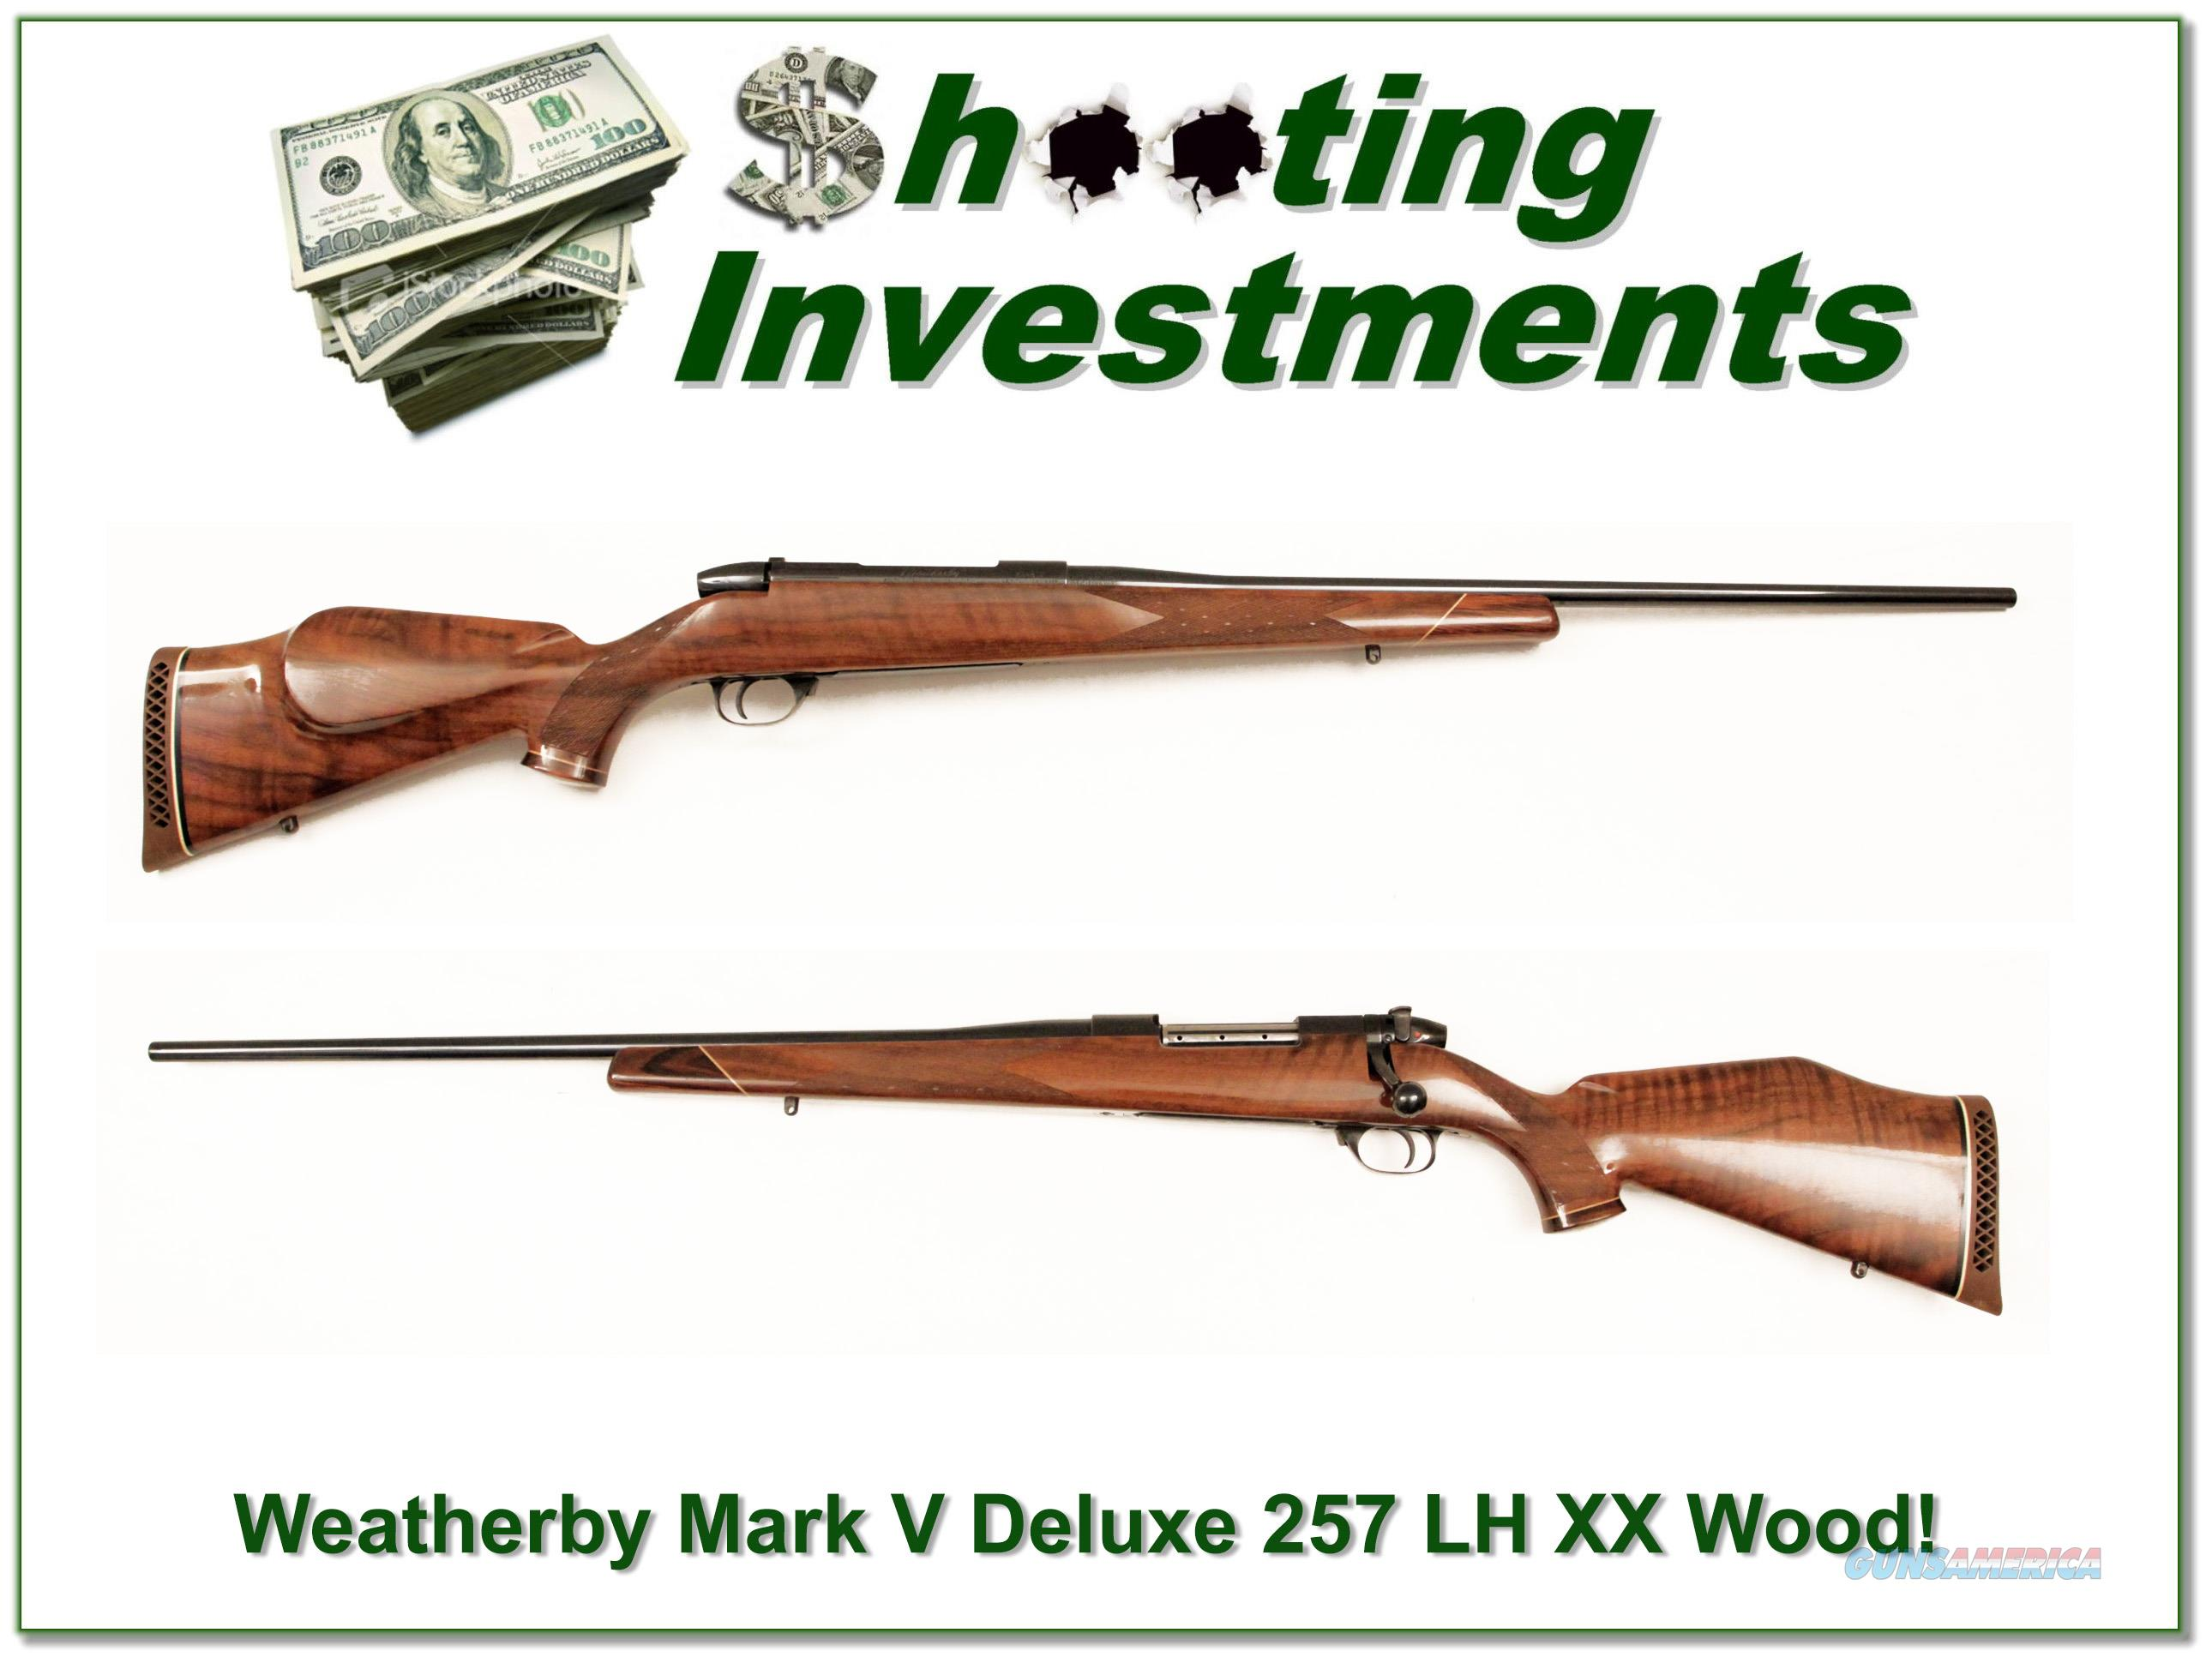 Weatherby Mark Deluxe LH 257 XX Wood!  Guns > Rifles > Weatherby Rifles > Sporting